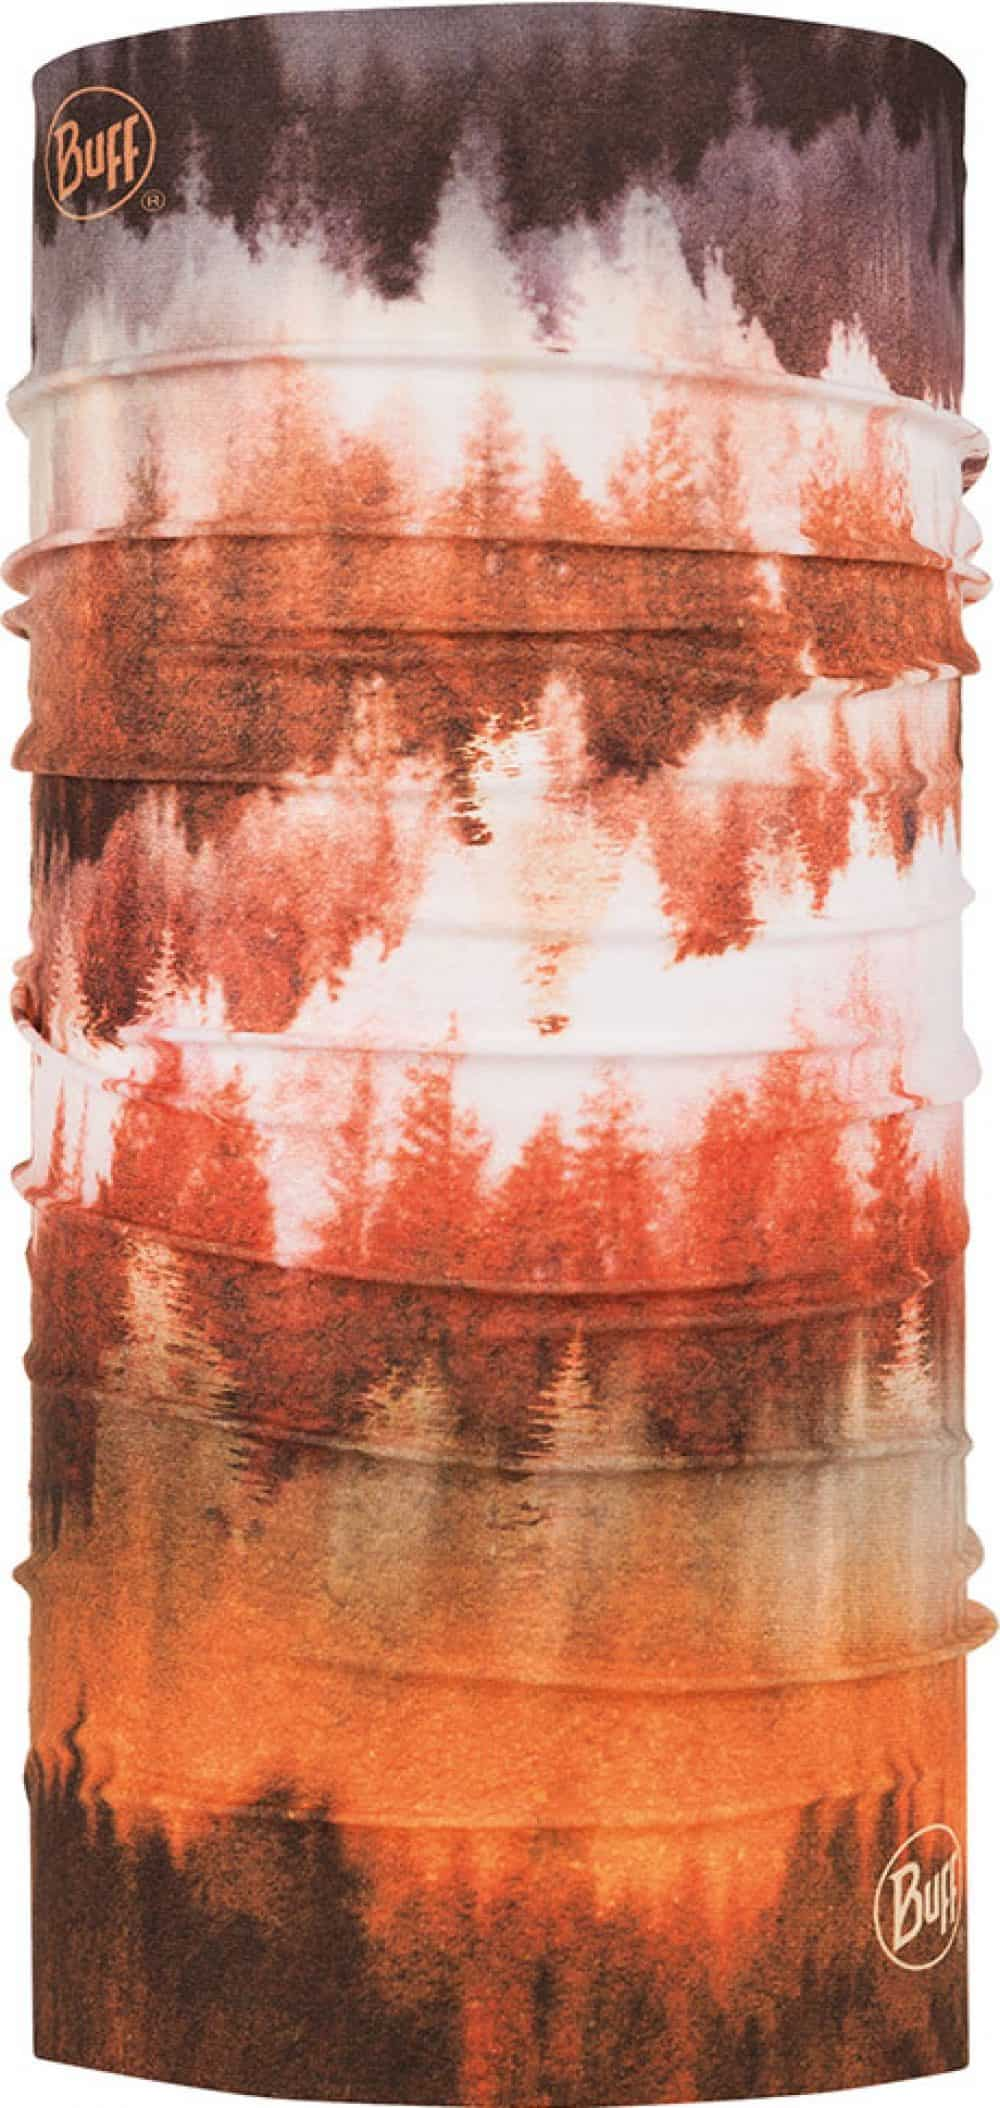 "Studio photo of the Original Buff® Design ""Mitsy Woods Brown"". Source: buff.eu"